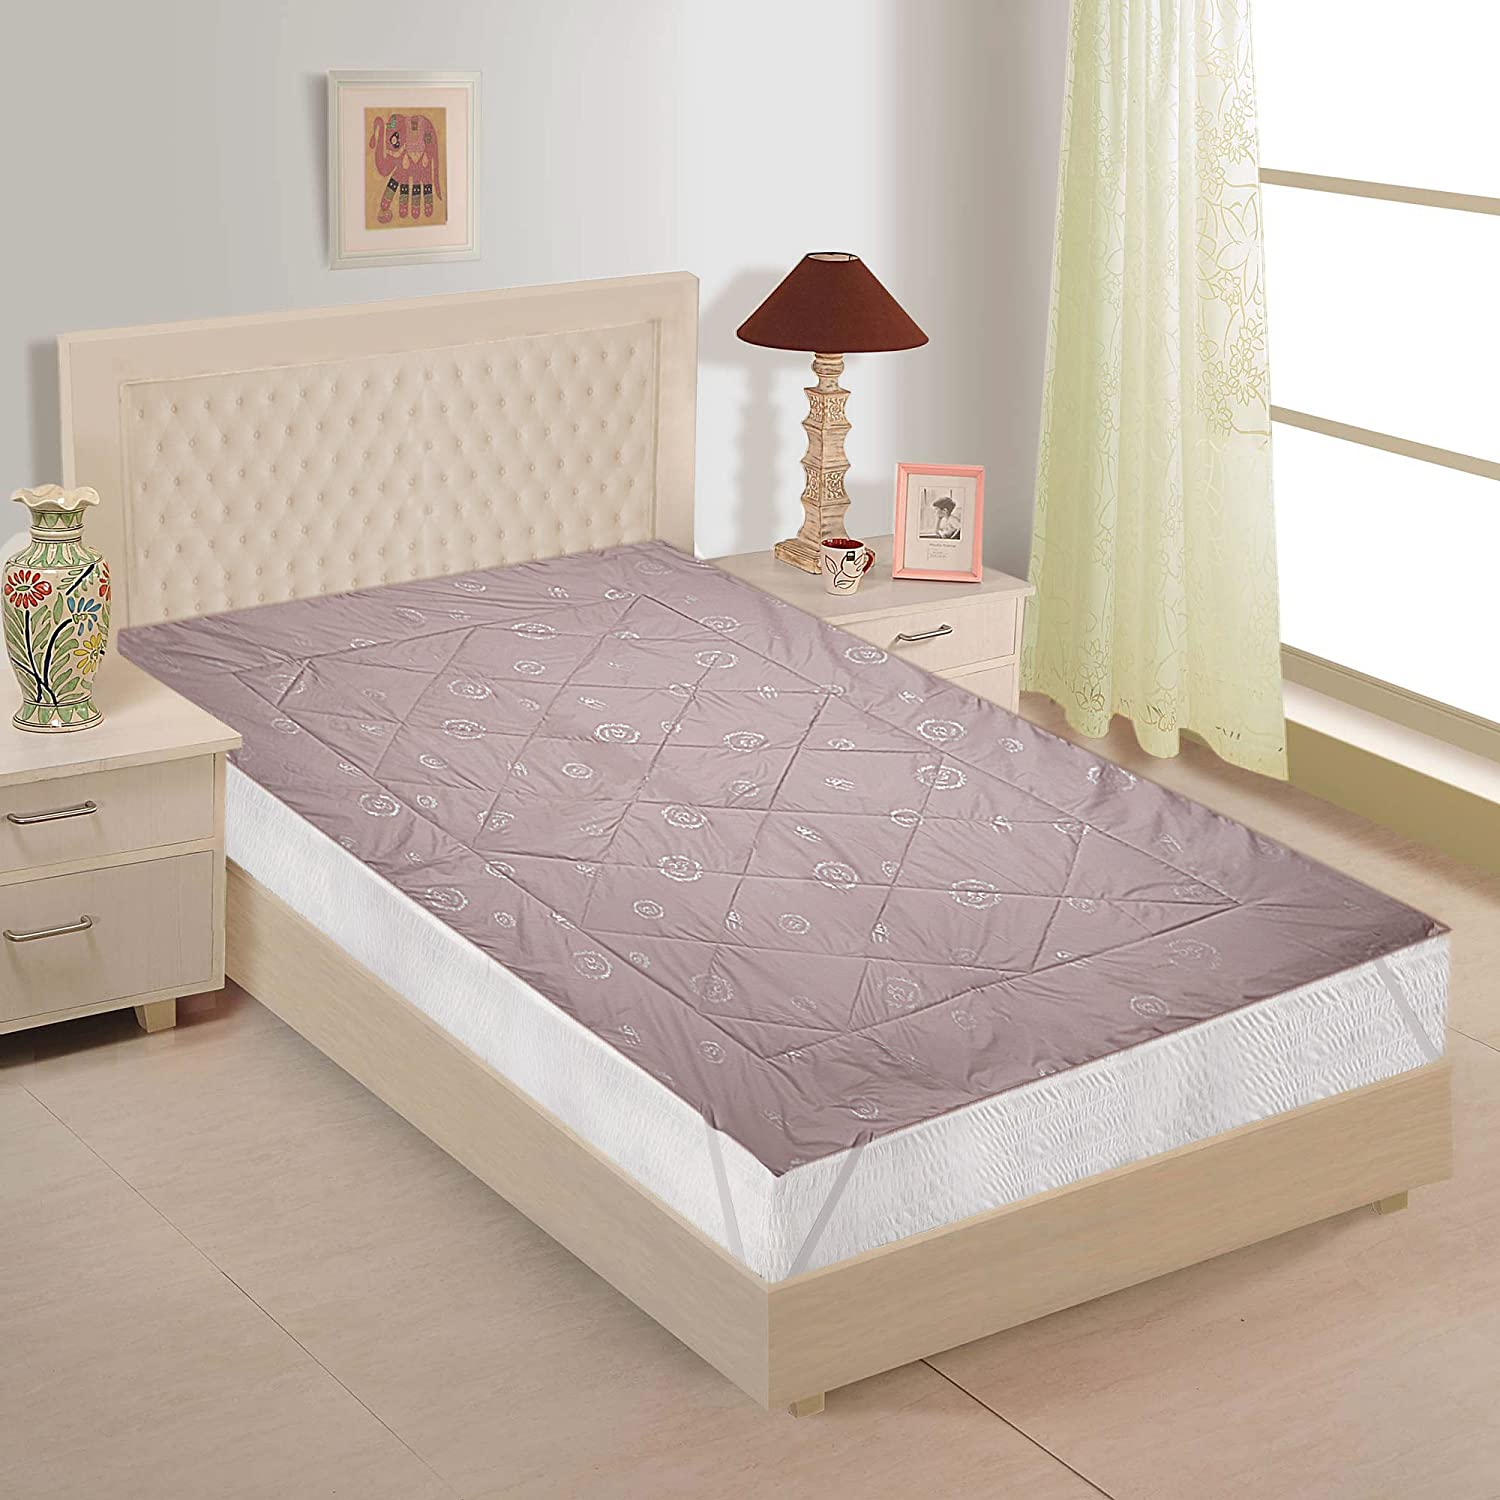 Linenwalas Imported All Season Dual Purpose Quilted Mattress